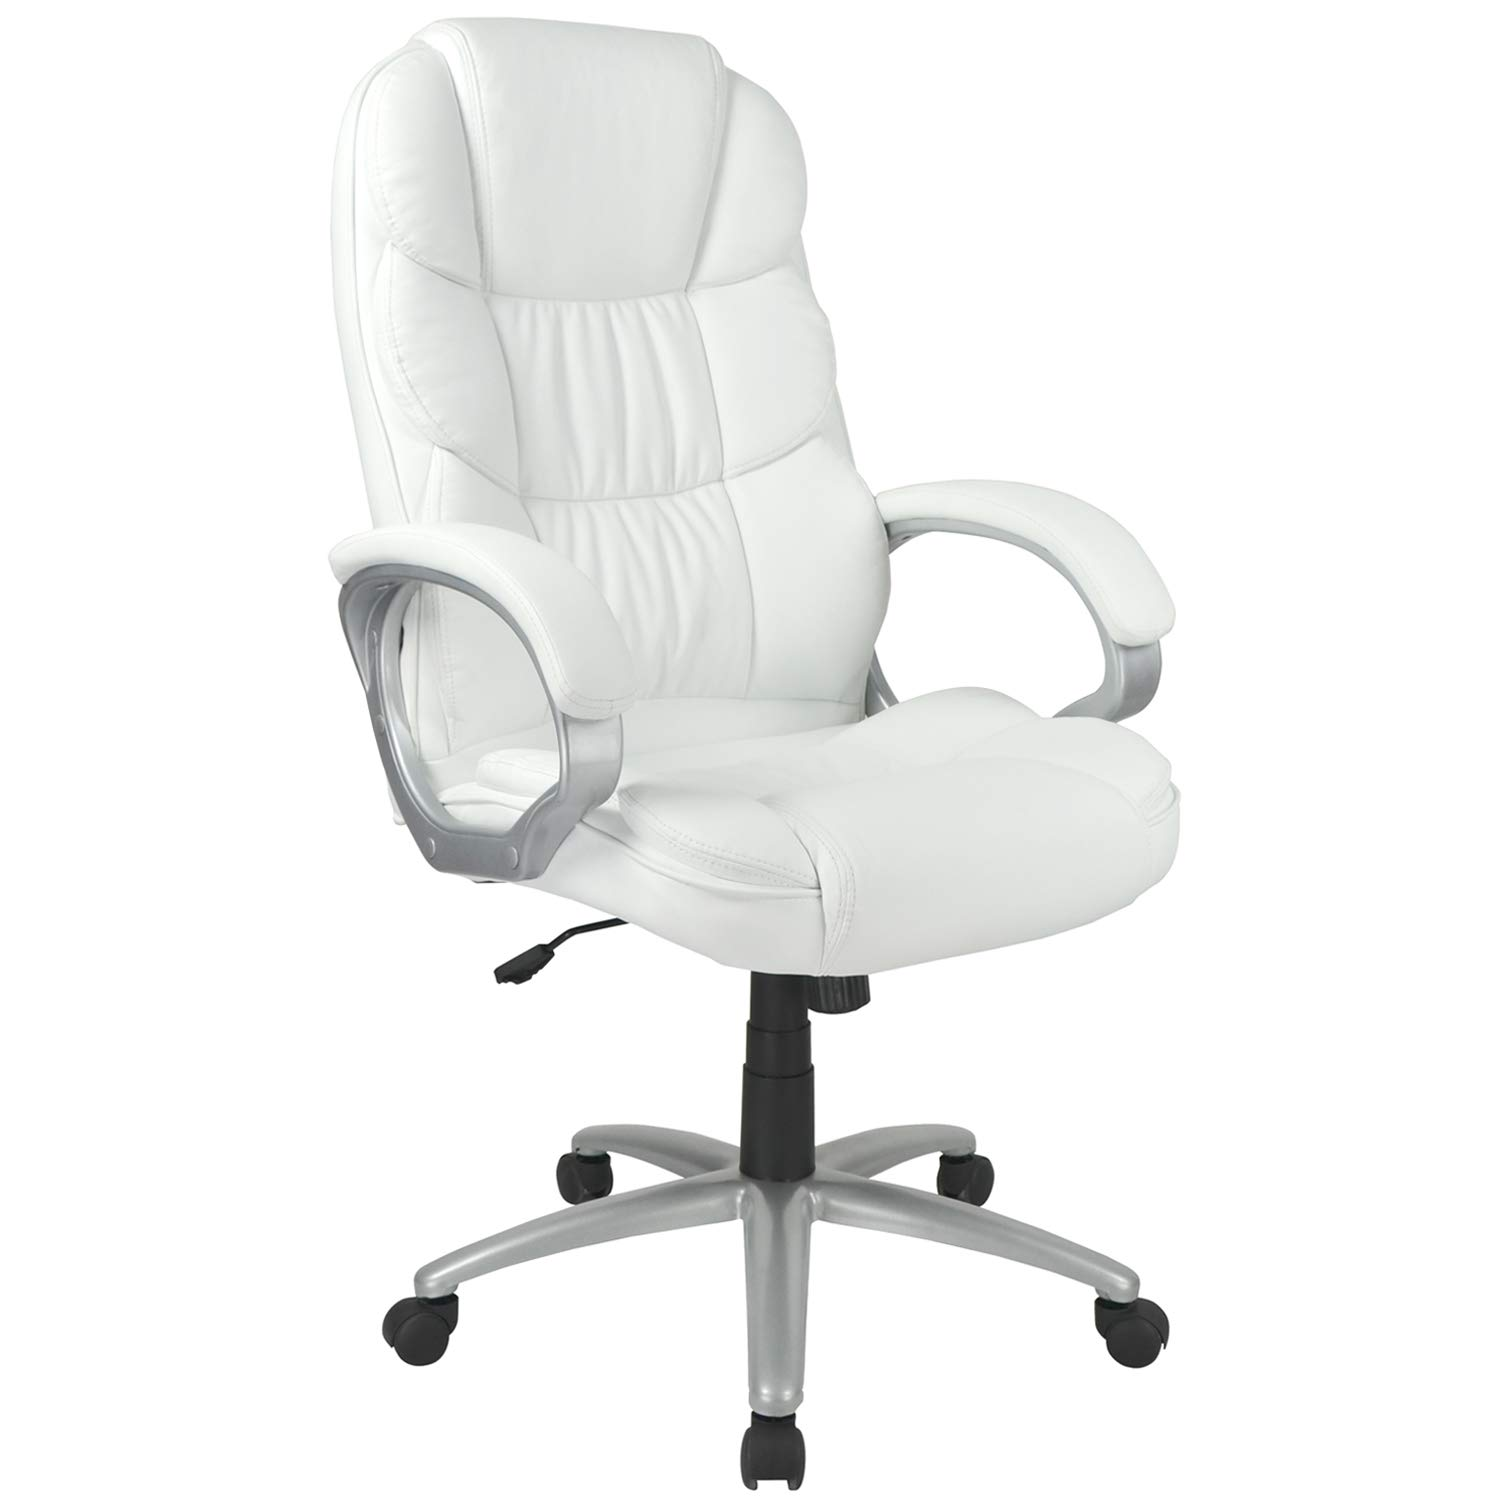 Ergonomic Office Chair Desk Chair Computer Chair with Arms Modern Executive Rolling Swivel Chair for Back Pain Adults Women,White by BestOffice